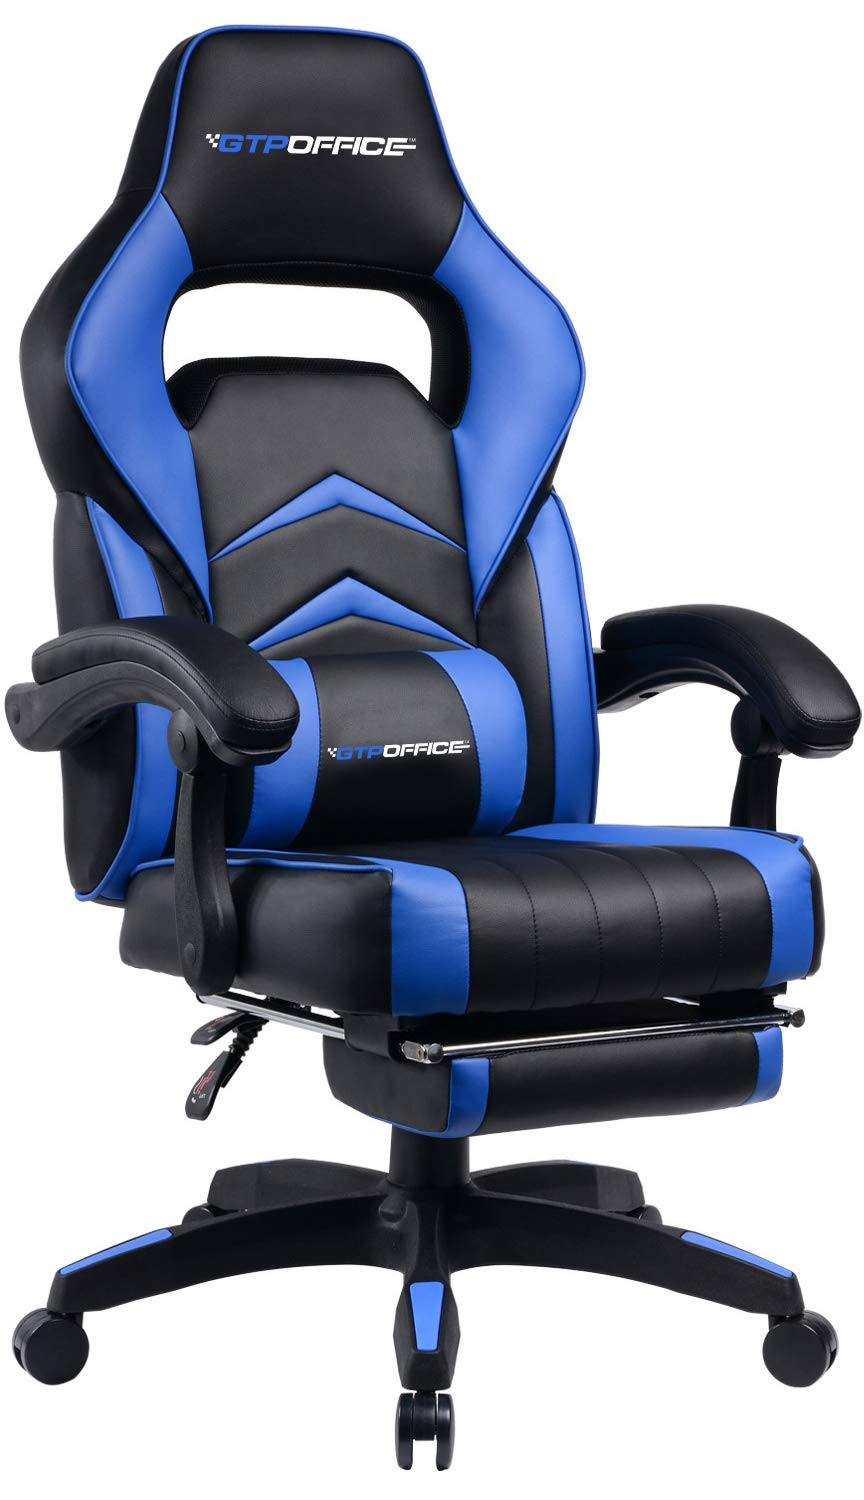 Gaming Chair Racing Style Reclining Office Swivel Computer Desk Chair Ergonomic Conference Executive Manager Work Chair PU Leather High Back Adjustable Task Chair with Lumbar and Padded Footrest by GTPOFFICE